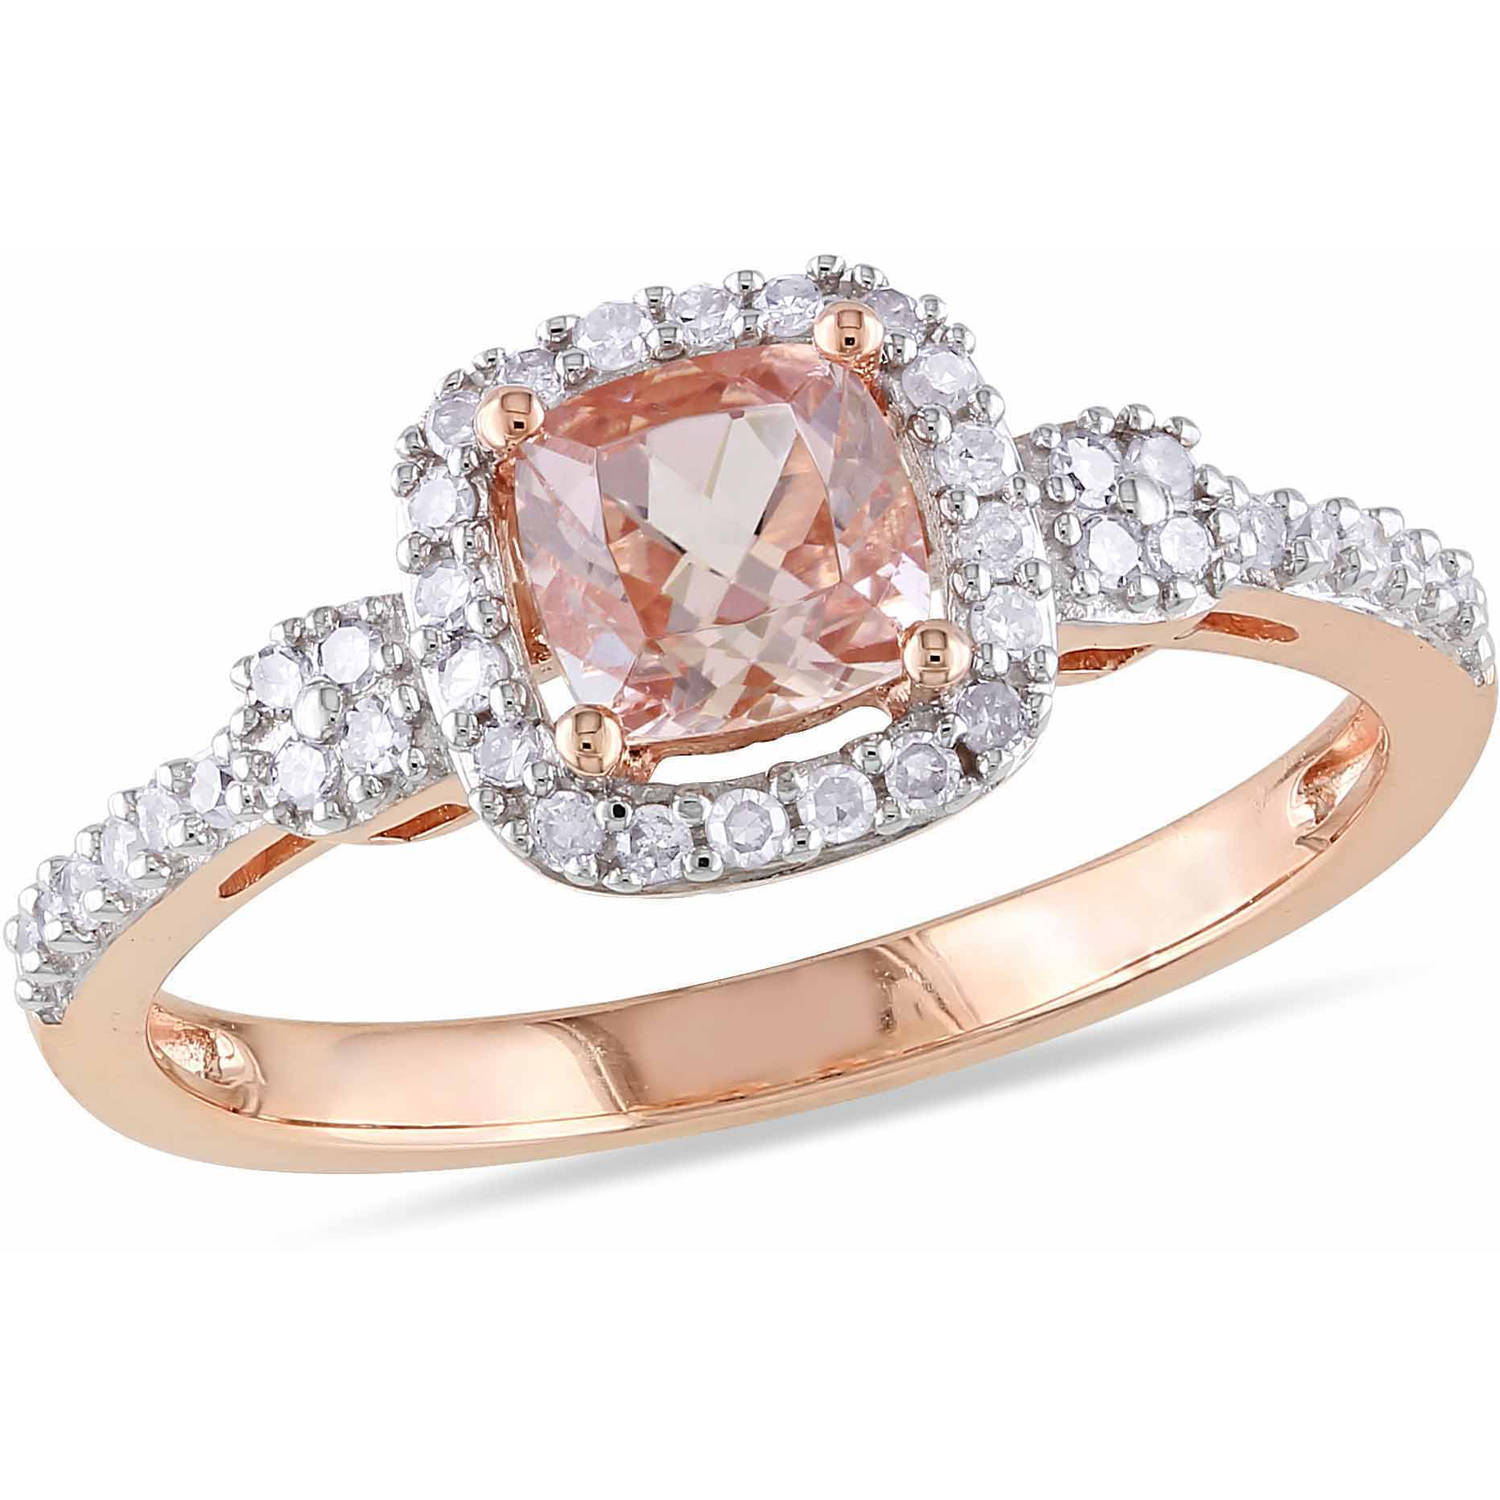 Tangelo 3 5 Carat T.G.W. Cushion-Cut Morganite and 1 5 Carat T.W. Diamond 10kt Pink Gold Halo Ring by Delmar Manufacturing LLC